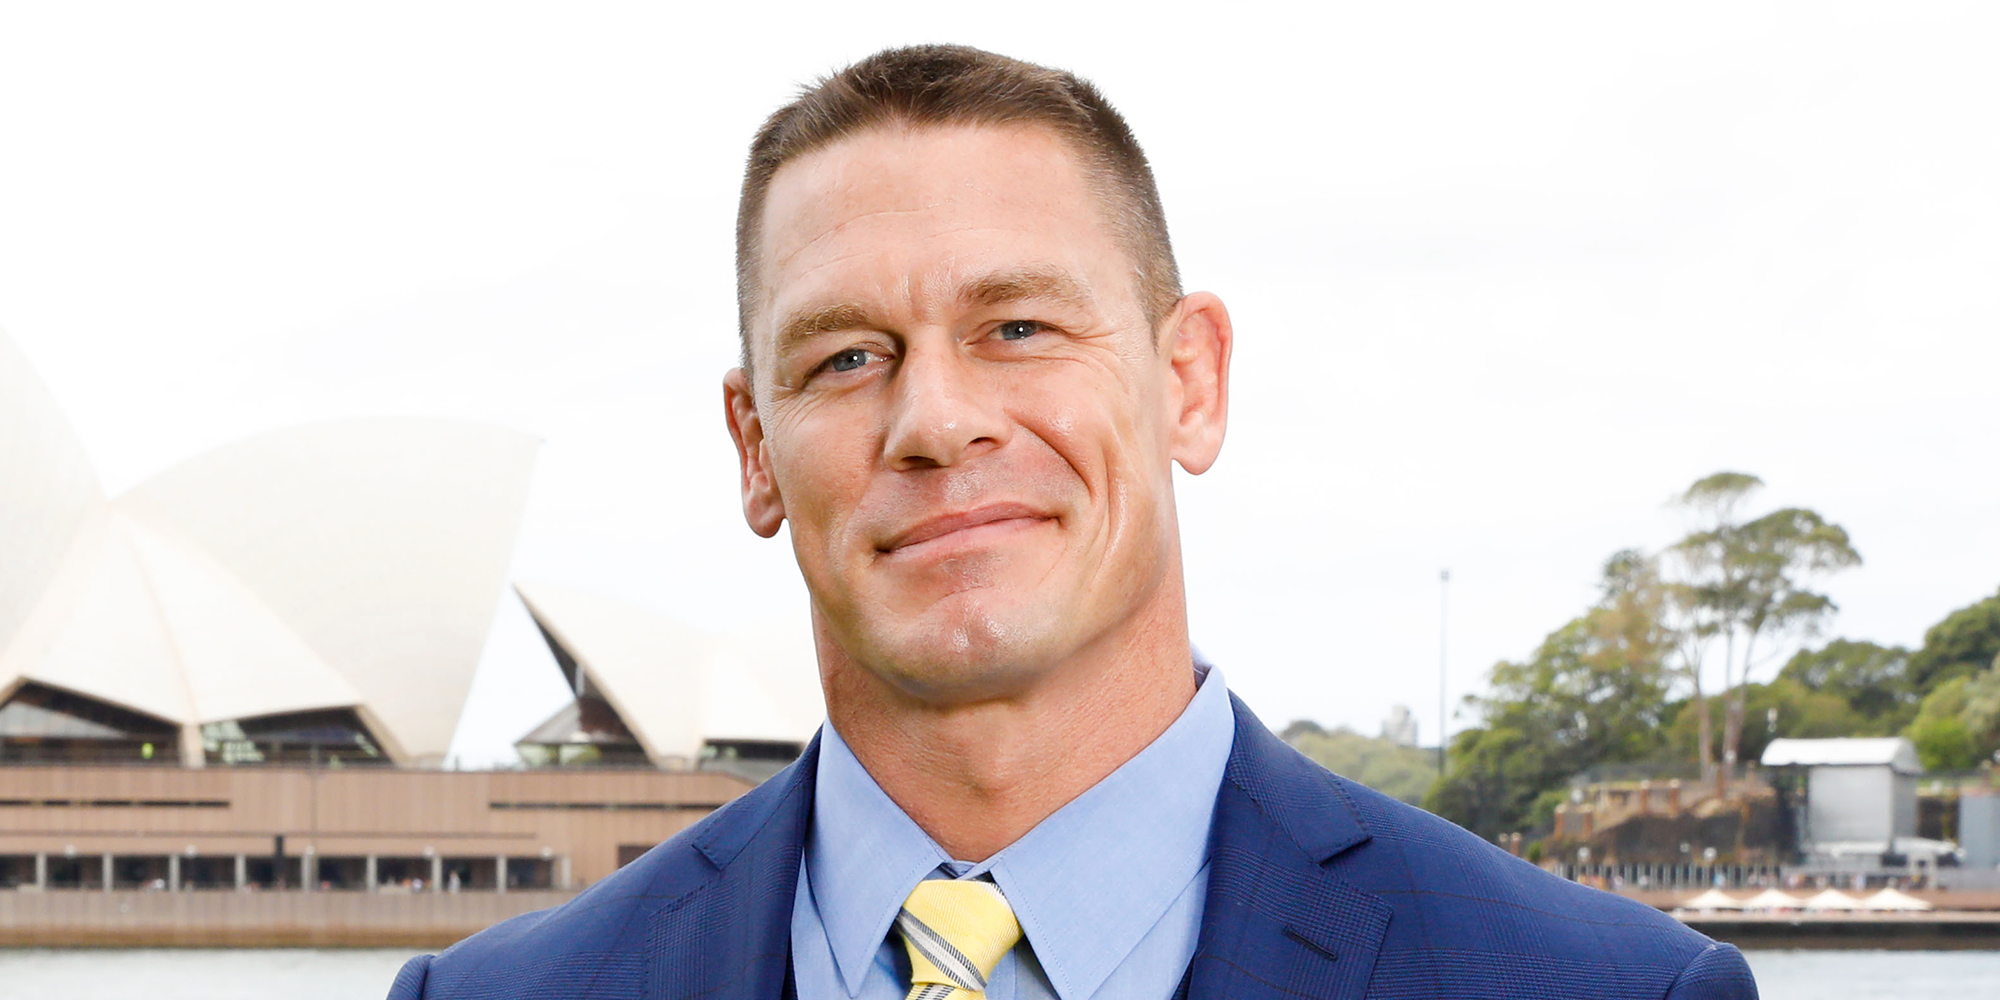 john cena visits fan with cerebral palsy